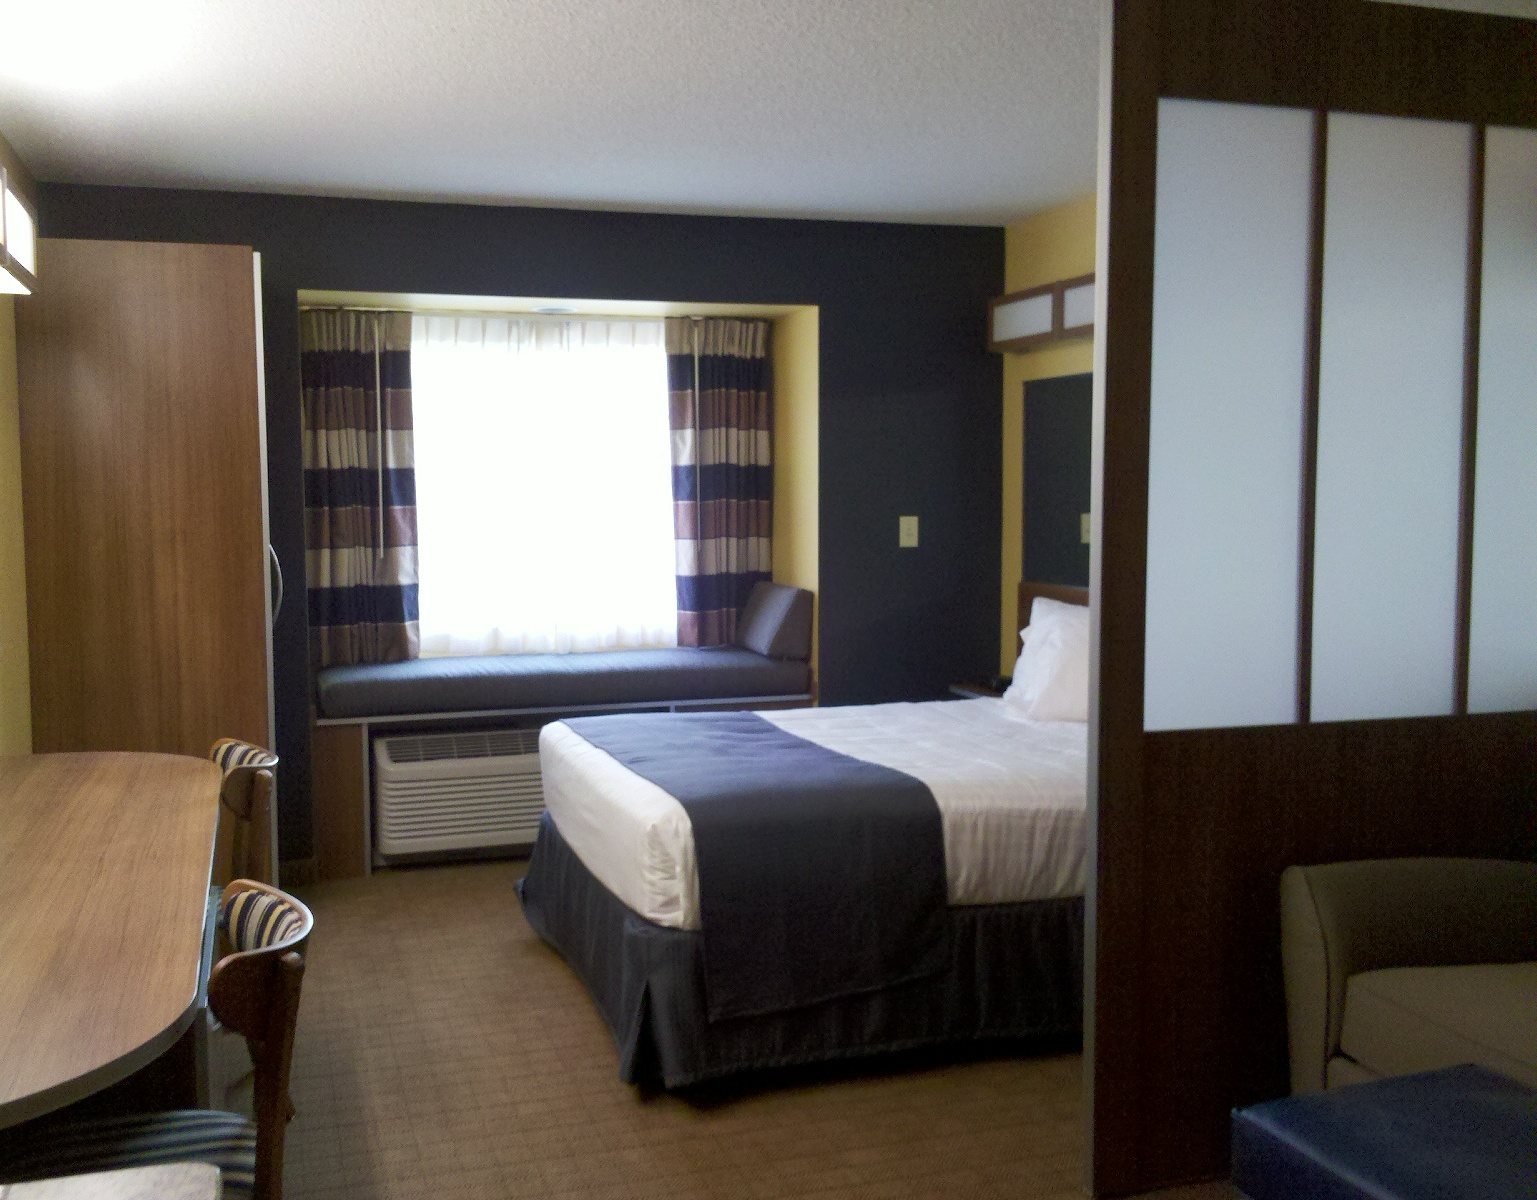 Microtel Inn & Suites by Wyndham Chili/Rochester Airport